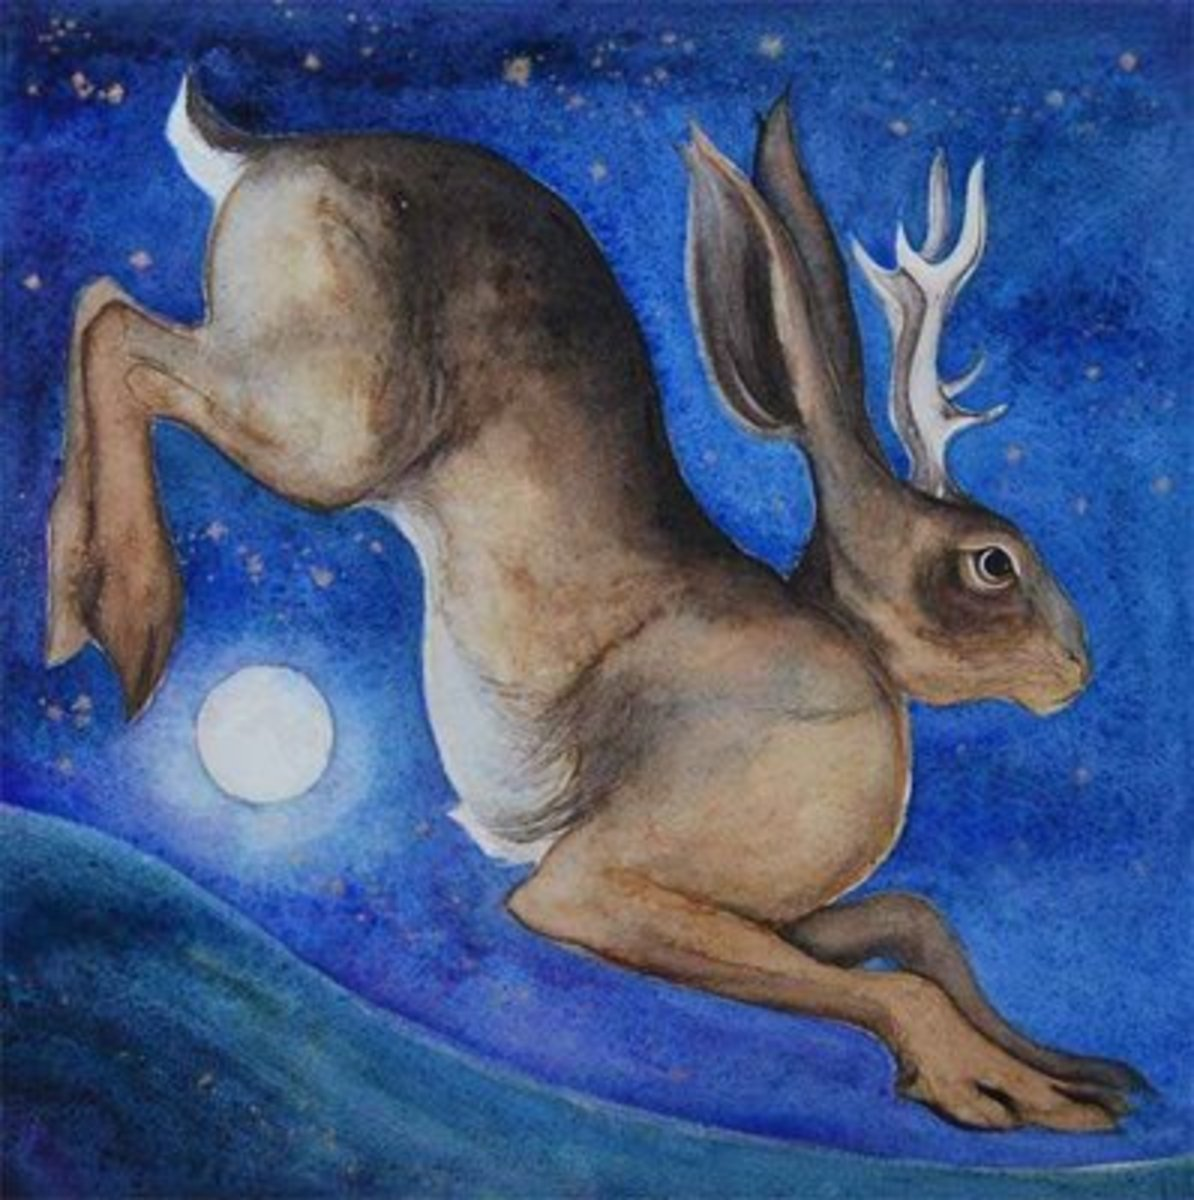 One of many Celtic stories around animals, this illustrates one of a deer turned hare by magic - Celtic witchcraft was something of wonder, not of fear  (littleredelf.com)